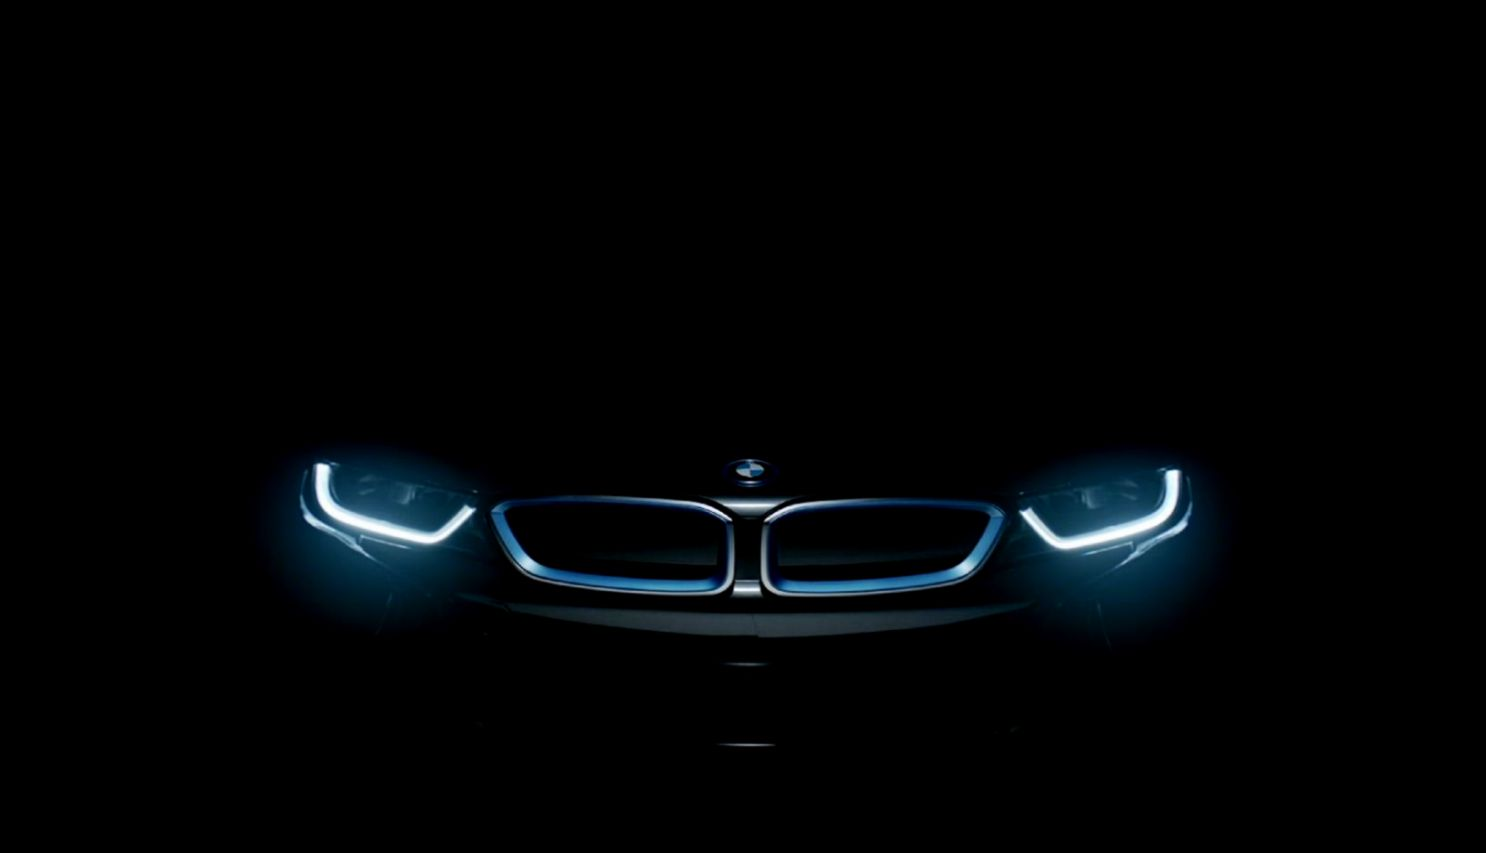 Bmw I8 Black Cars Wallpaper Lo